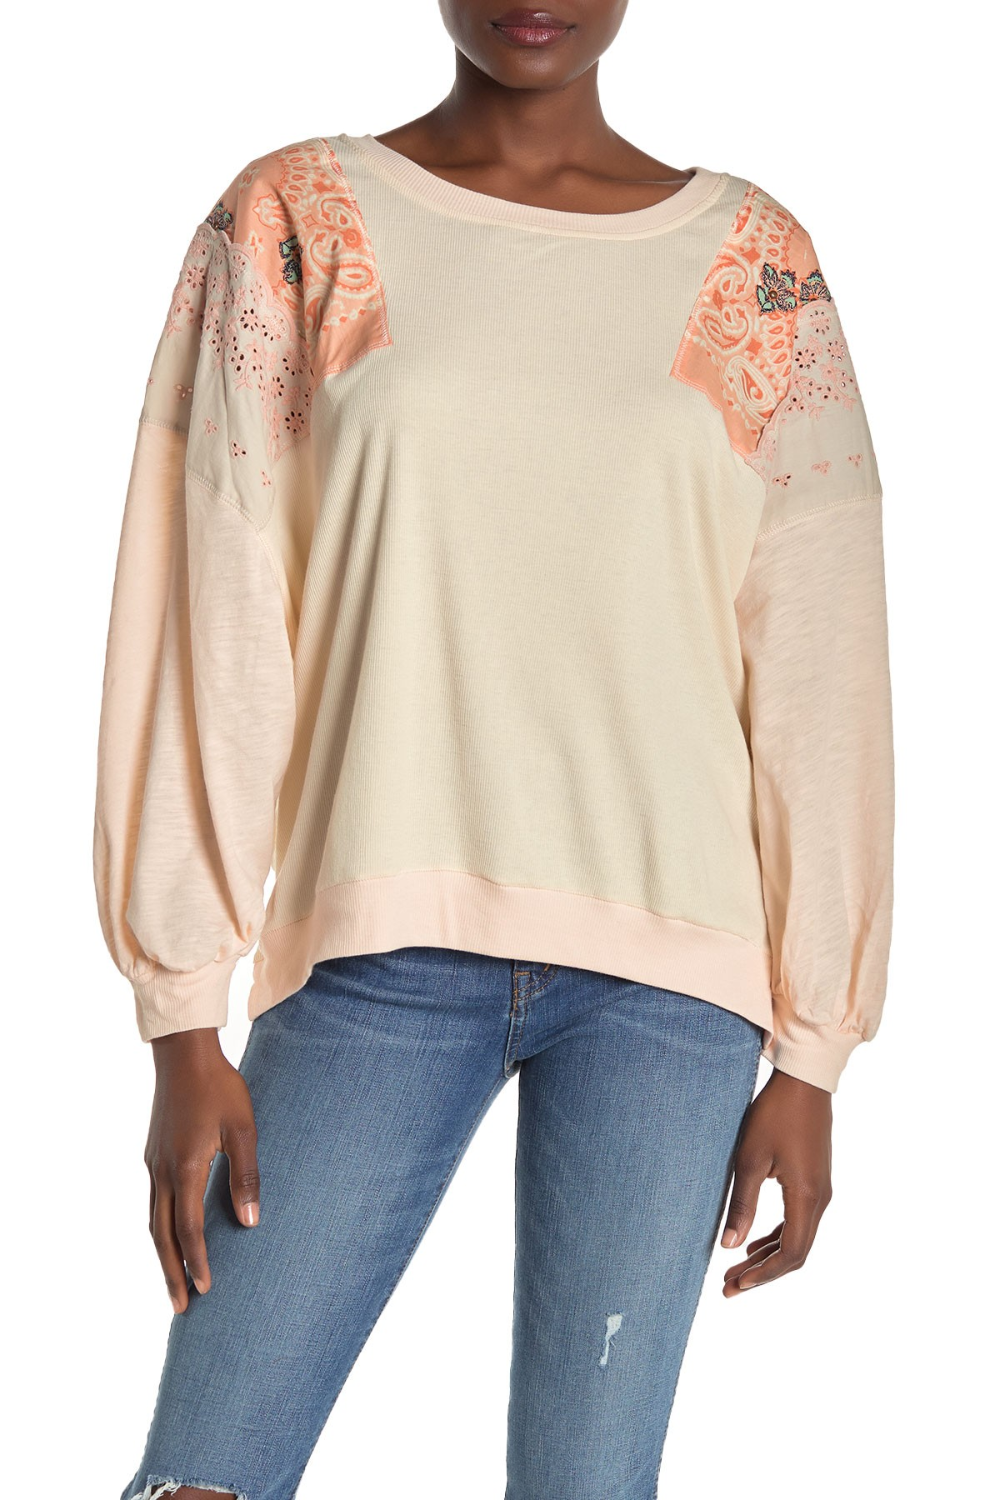 Free People Feelin It Embroidered Shirt In 2020 Embroidered